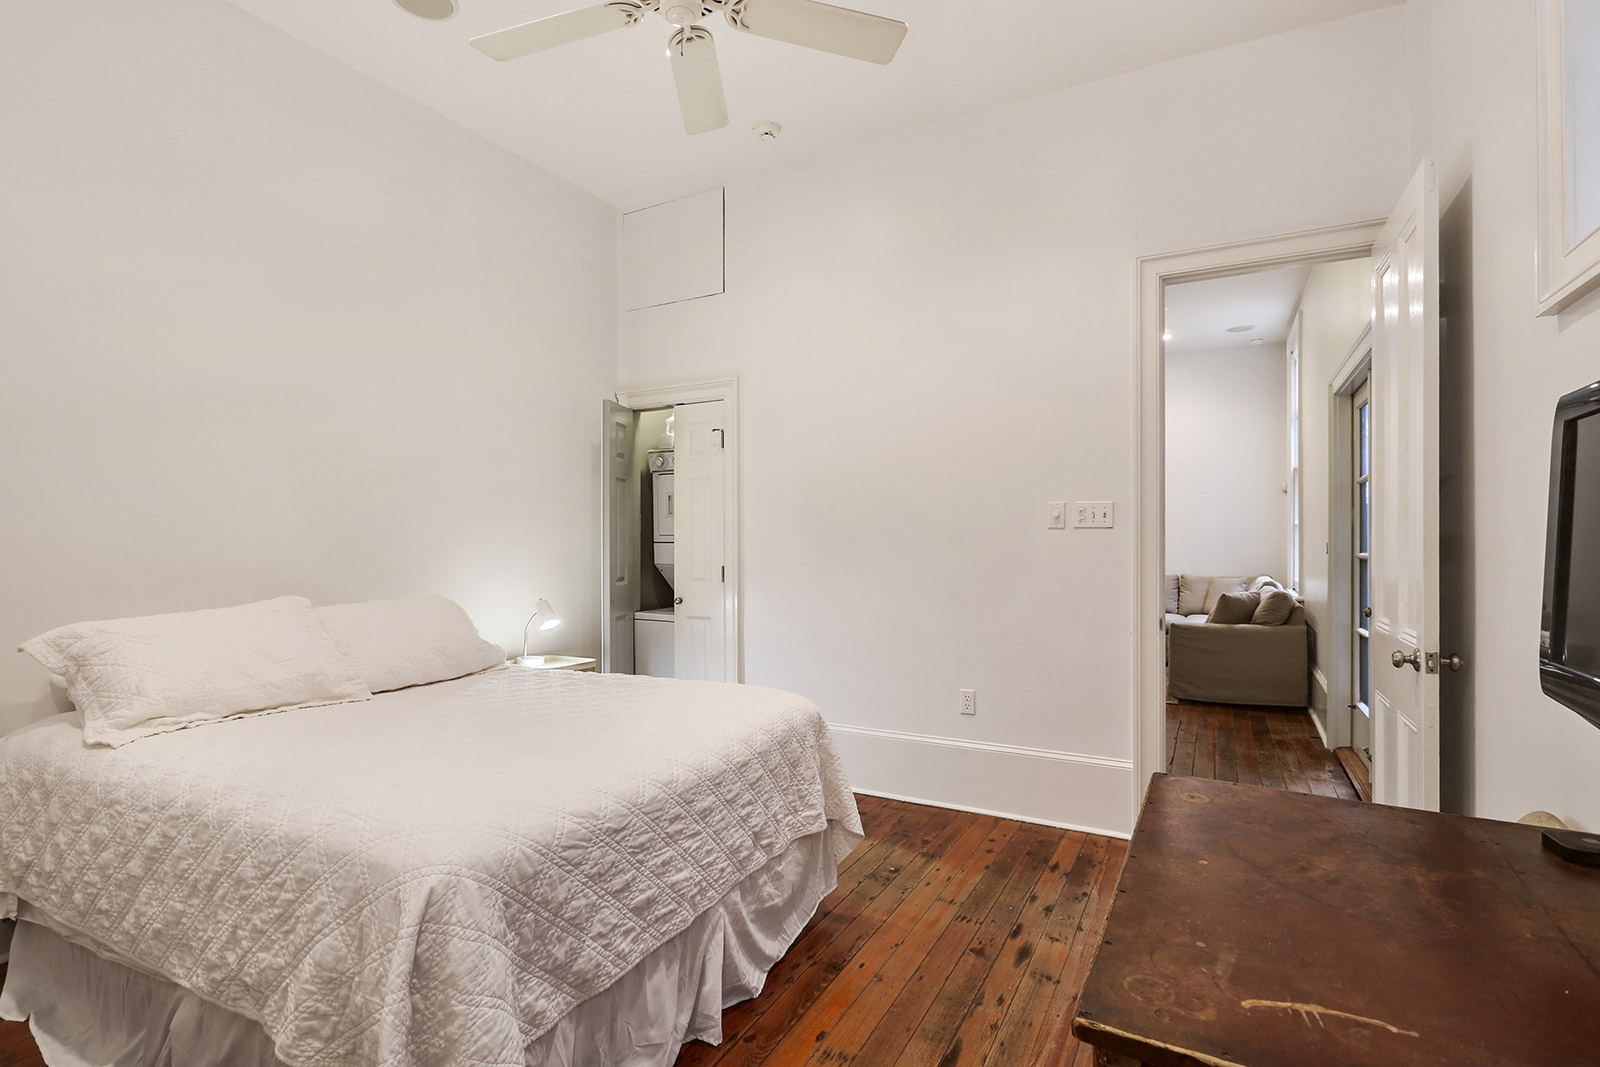 Uptown, Condo, 1 beds, 1.5 baths, $2800 per month New Orleans Rental - devie image_8